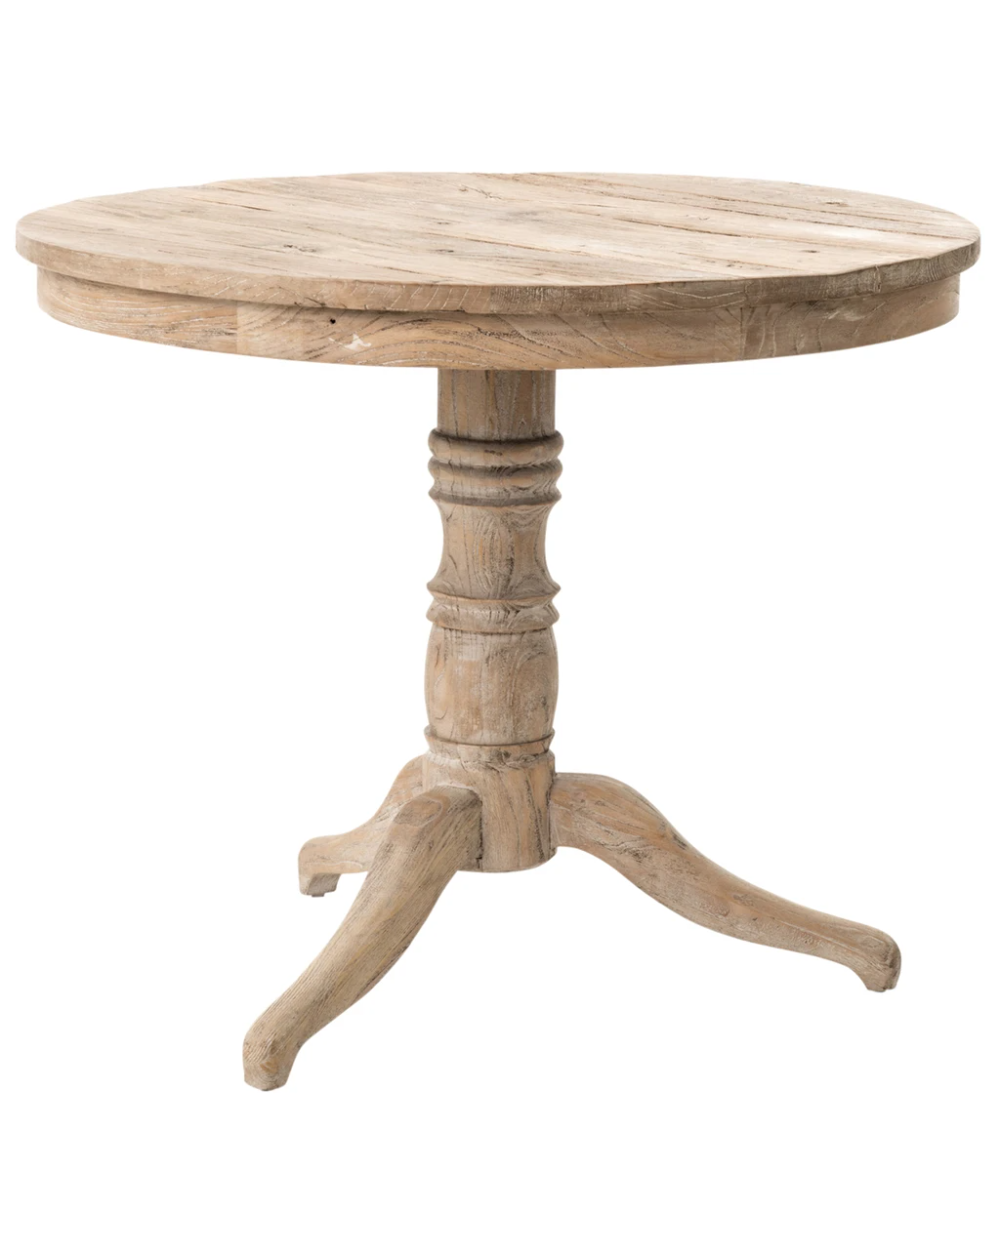 Chloe Side Table In 2021 Dining Table Side Table Occasional Table [ 1252 x 1000 Pixel ]